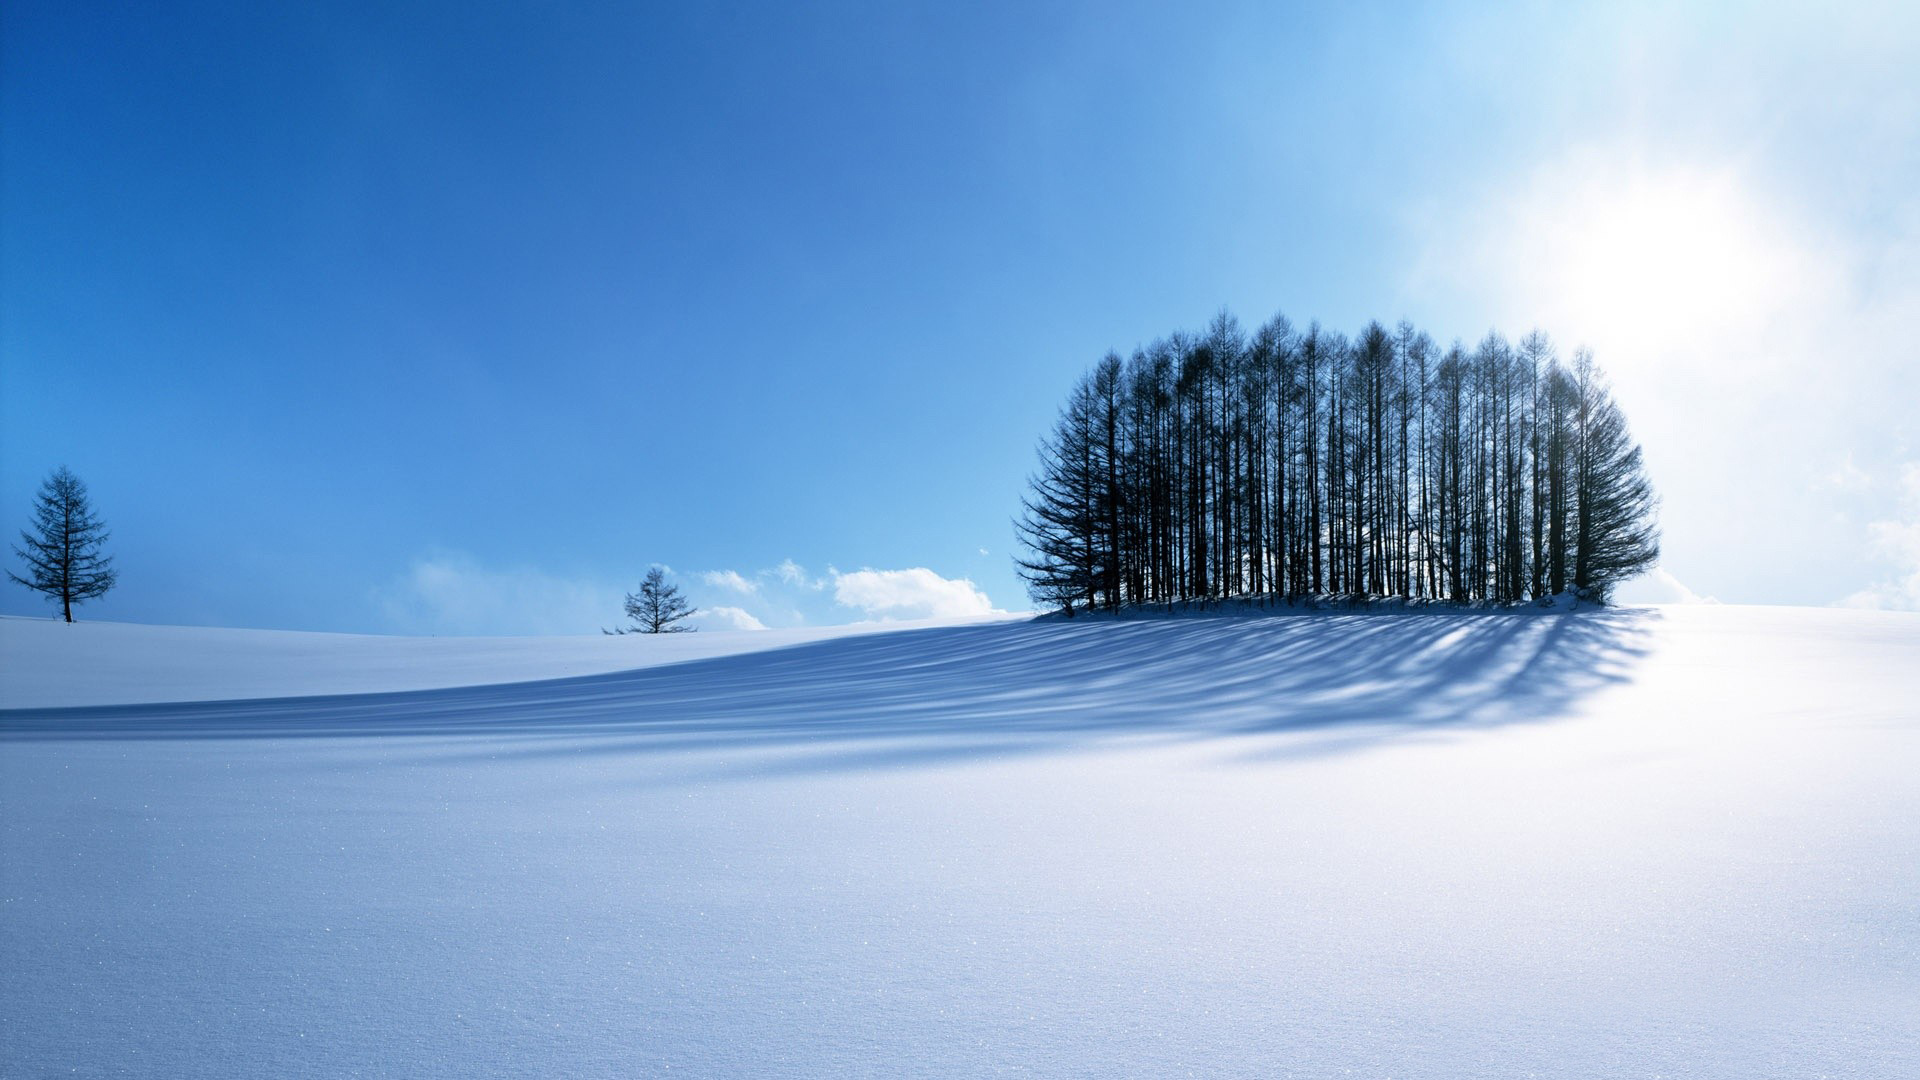 Winter Scenery 319.12 Kb